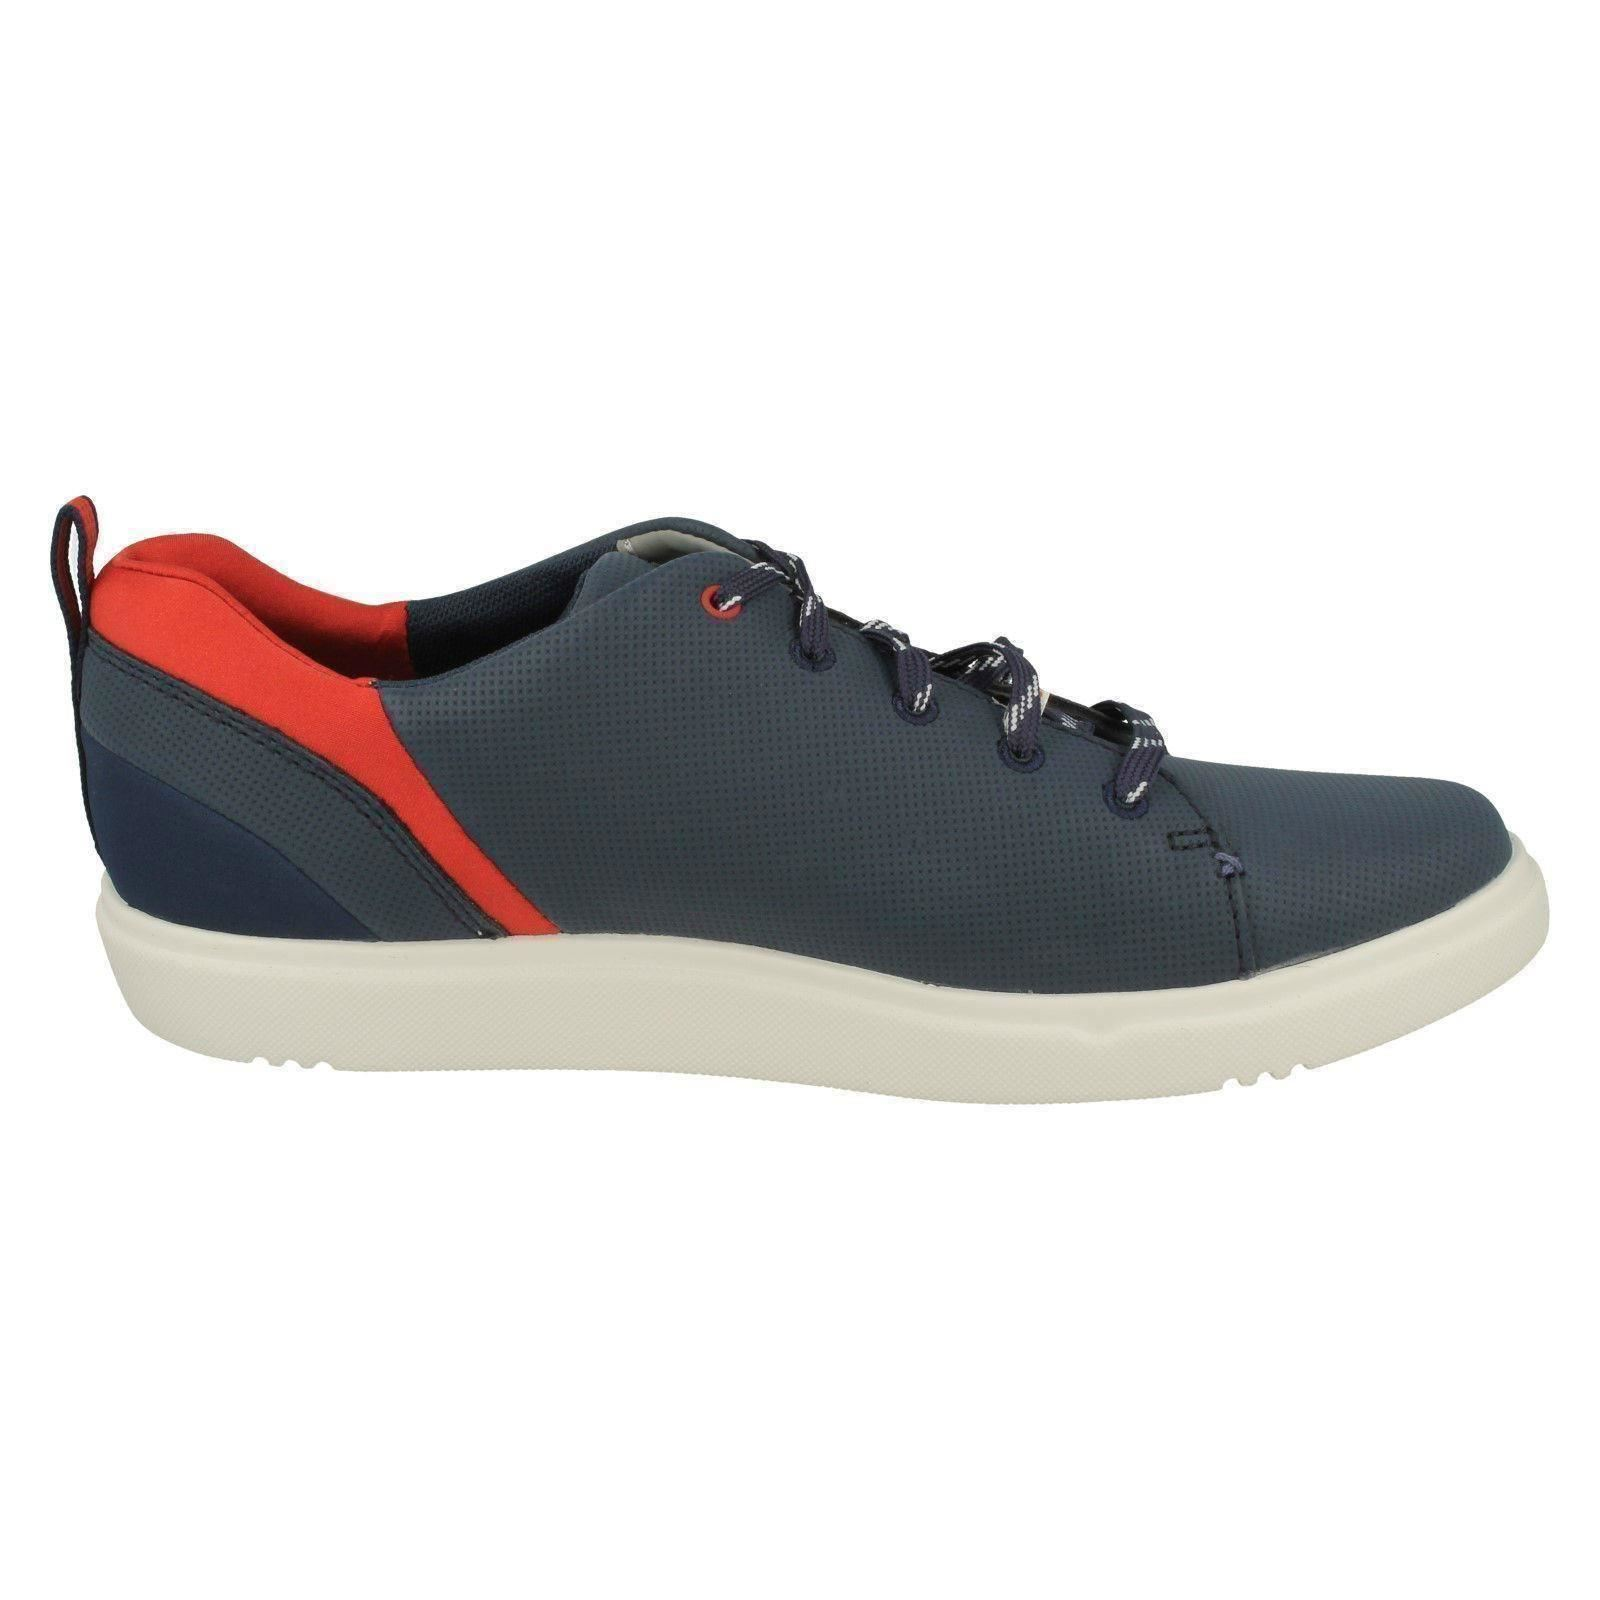 Ladies Clarks Casual Trainer shoes Step Verve Verve Verve Lo 00e7ac